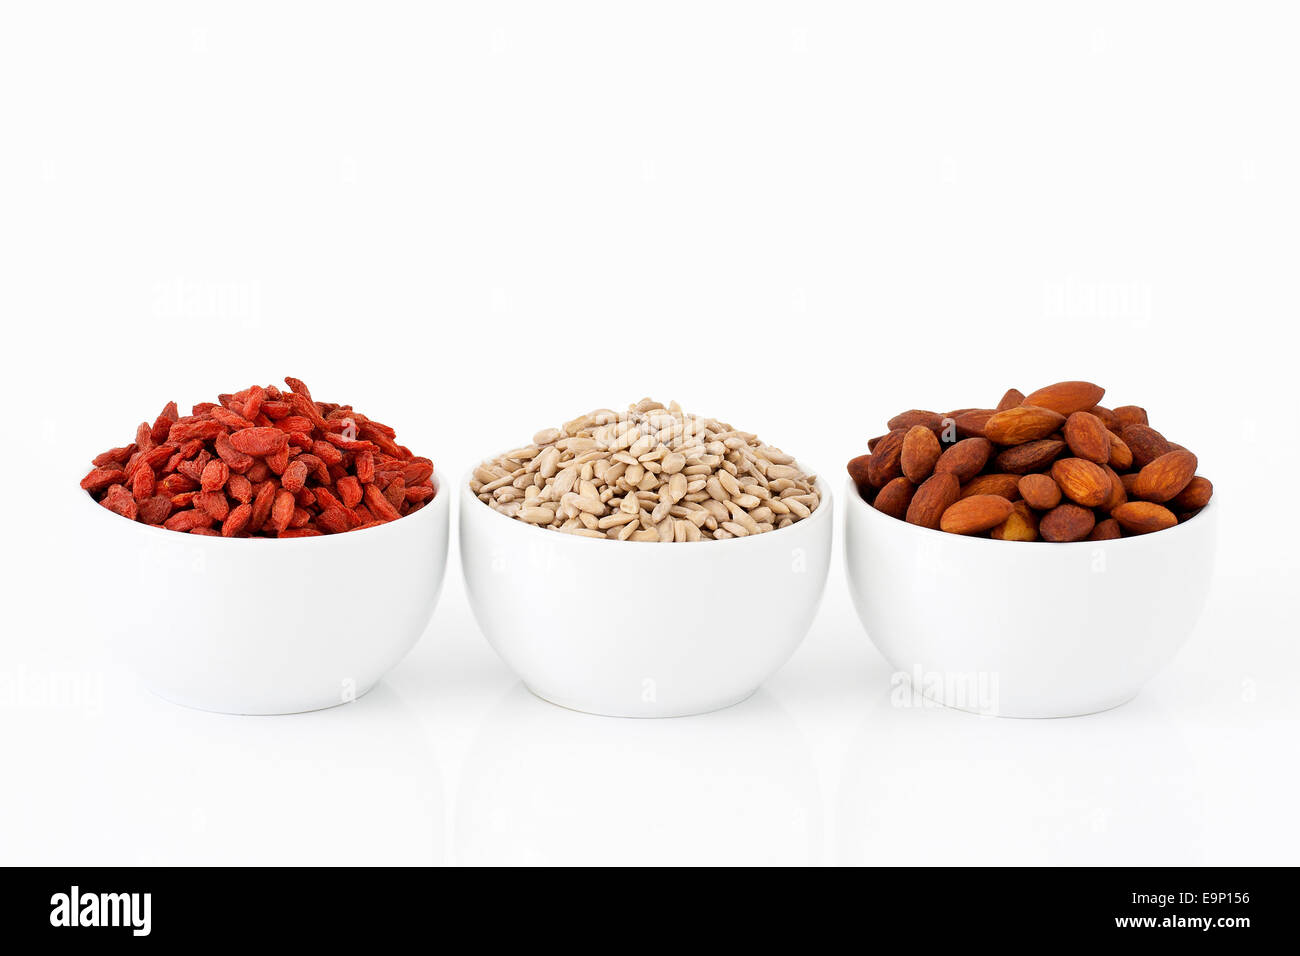 Almonds, sunflower seeds and goji berries on white background - Stock Image